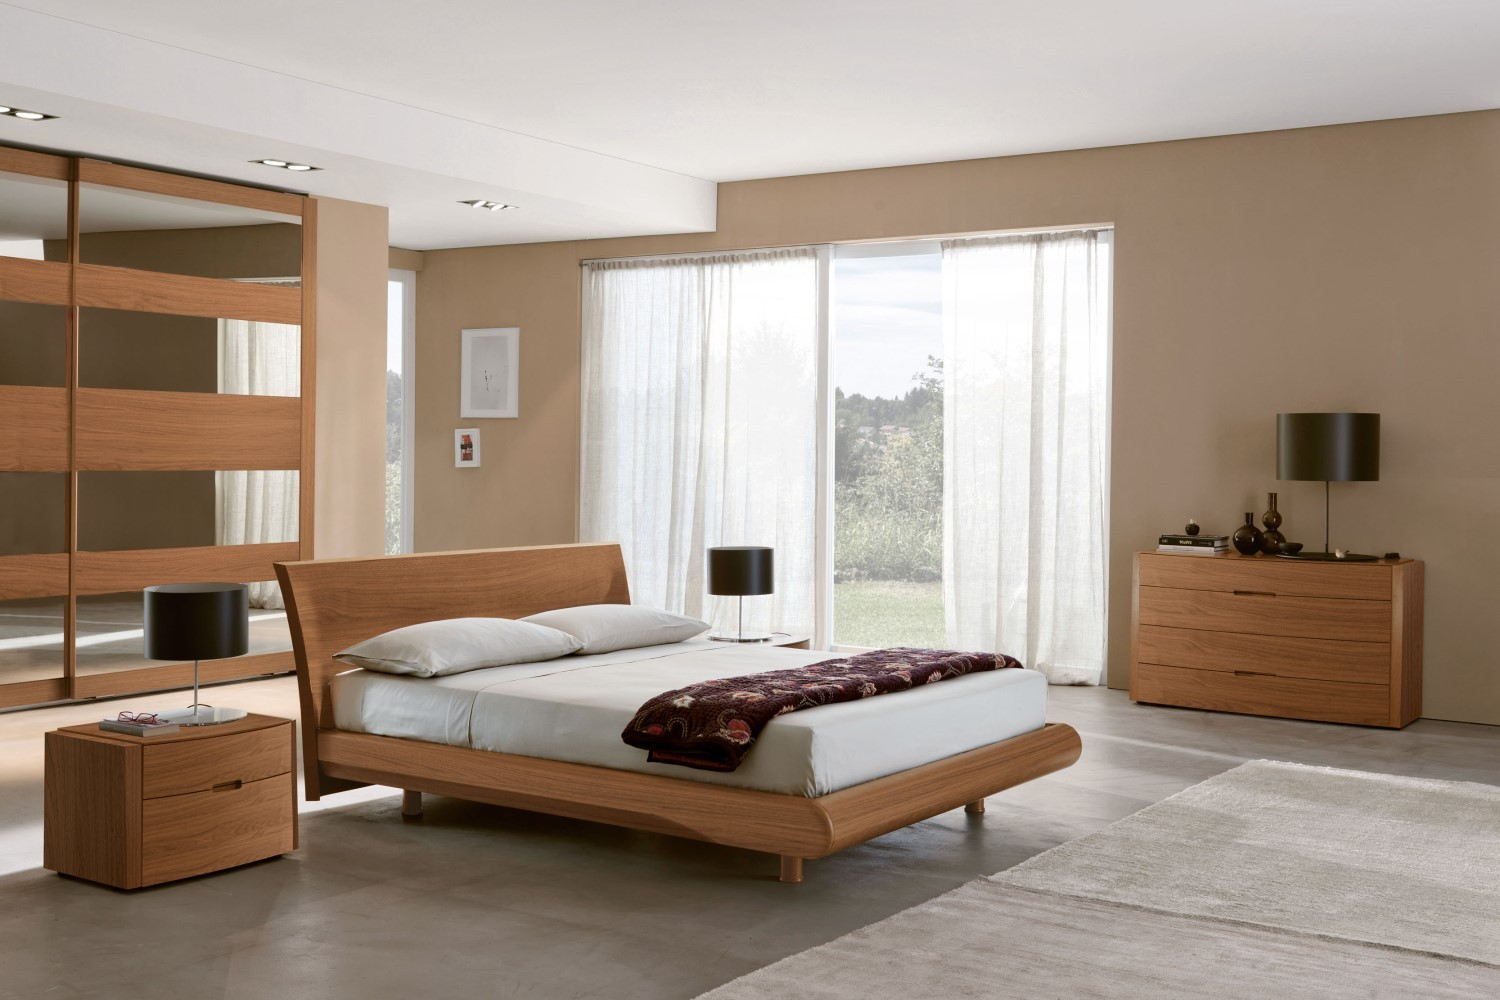 Decorazione casa for Camere da letto convenienti